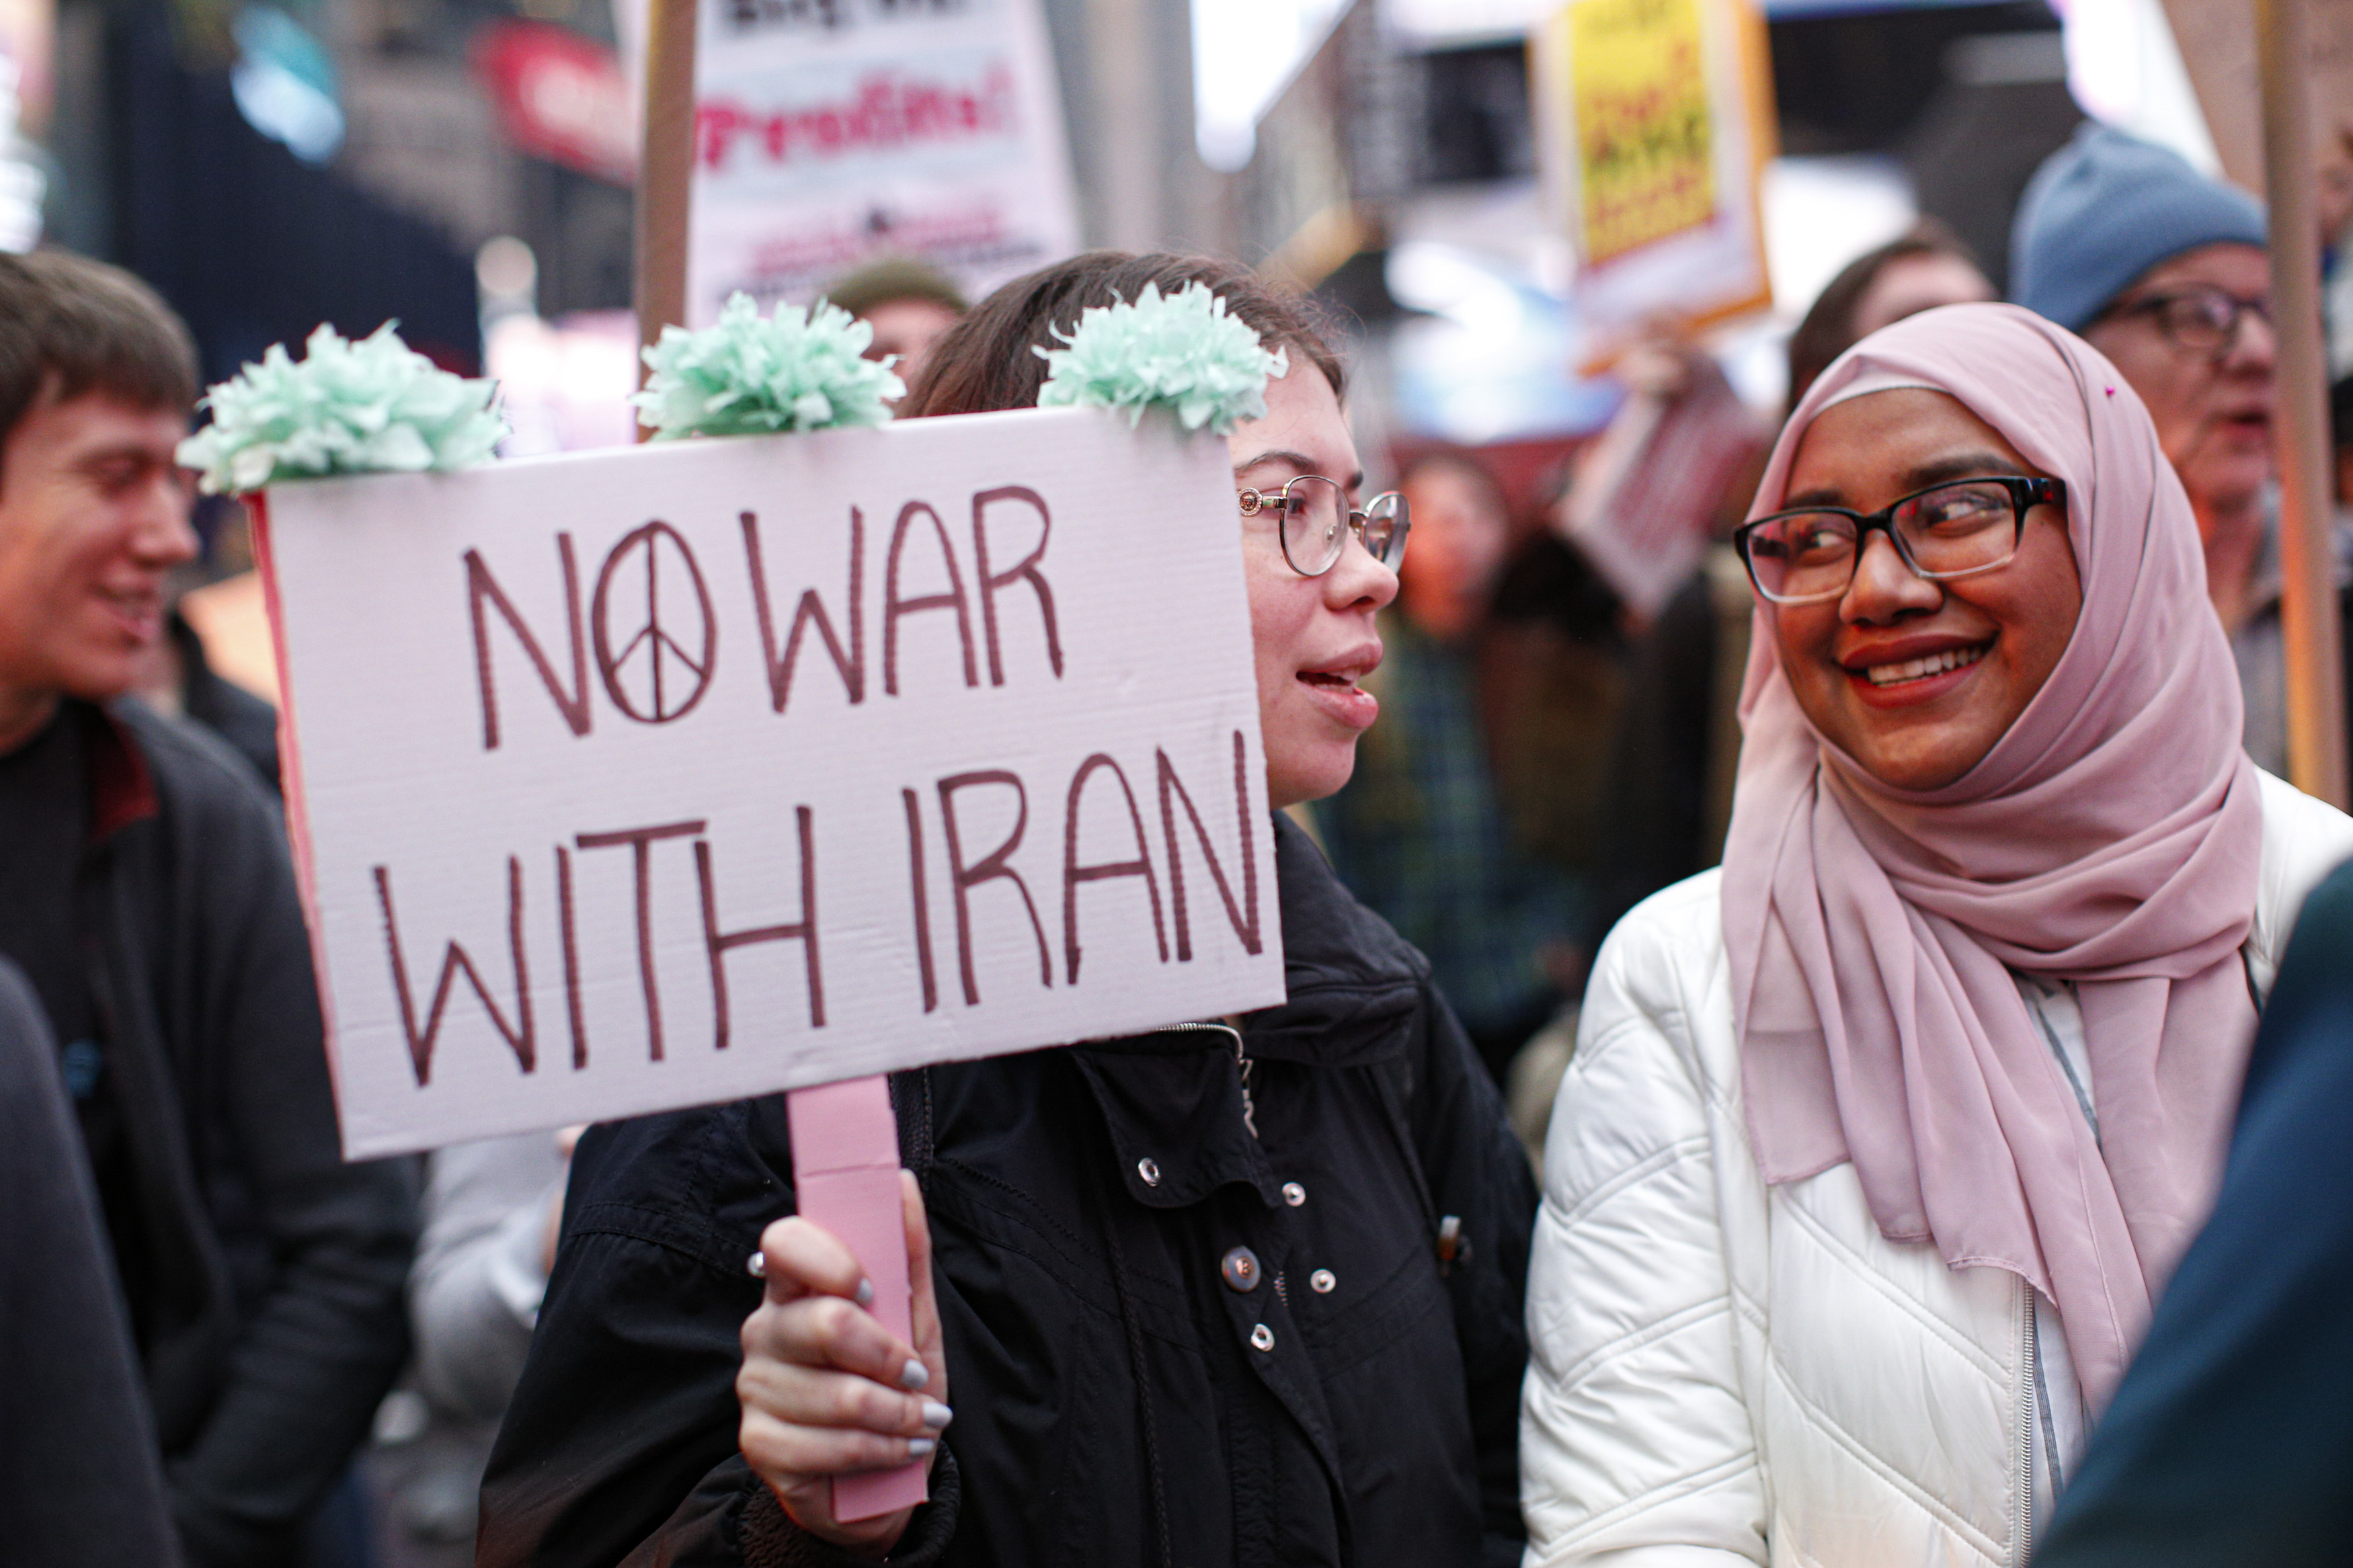 An anti-war protest at Times Square in New York on January 4, 2020.